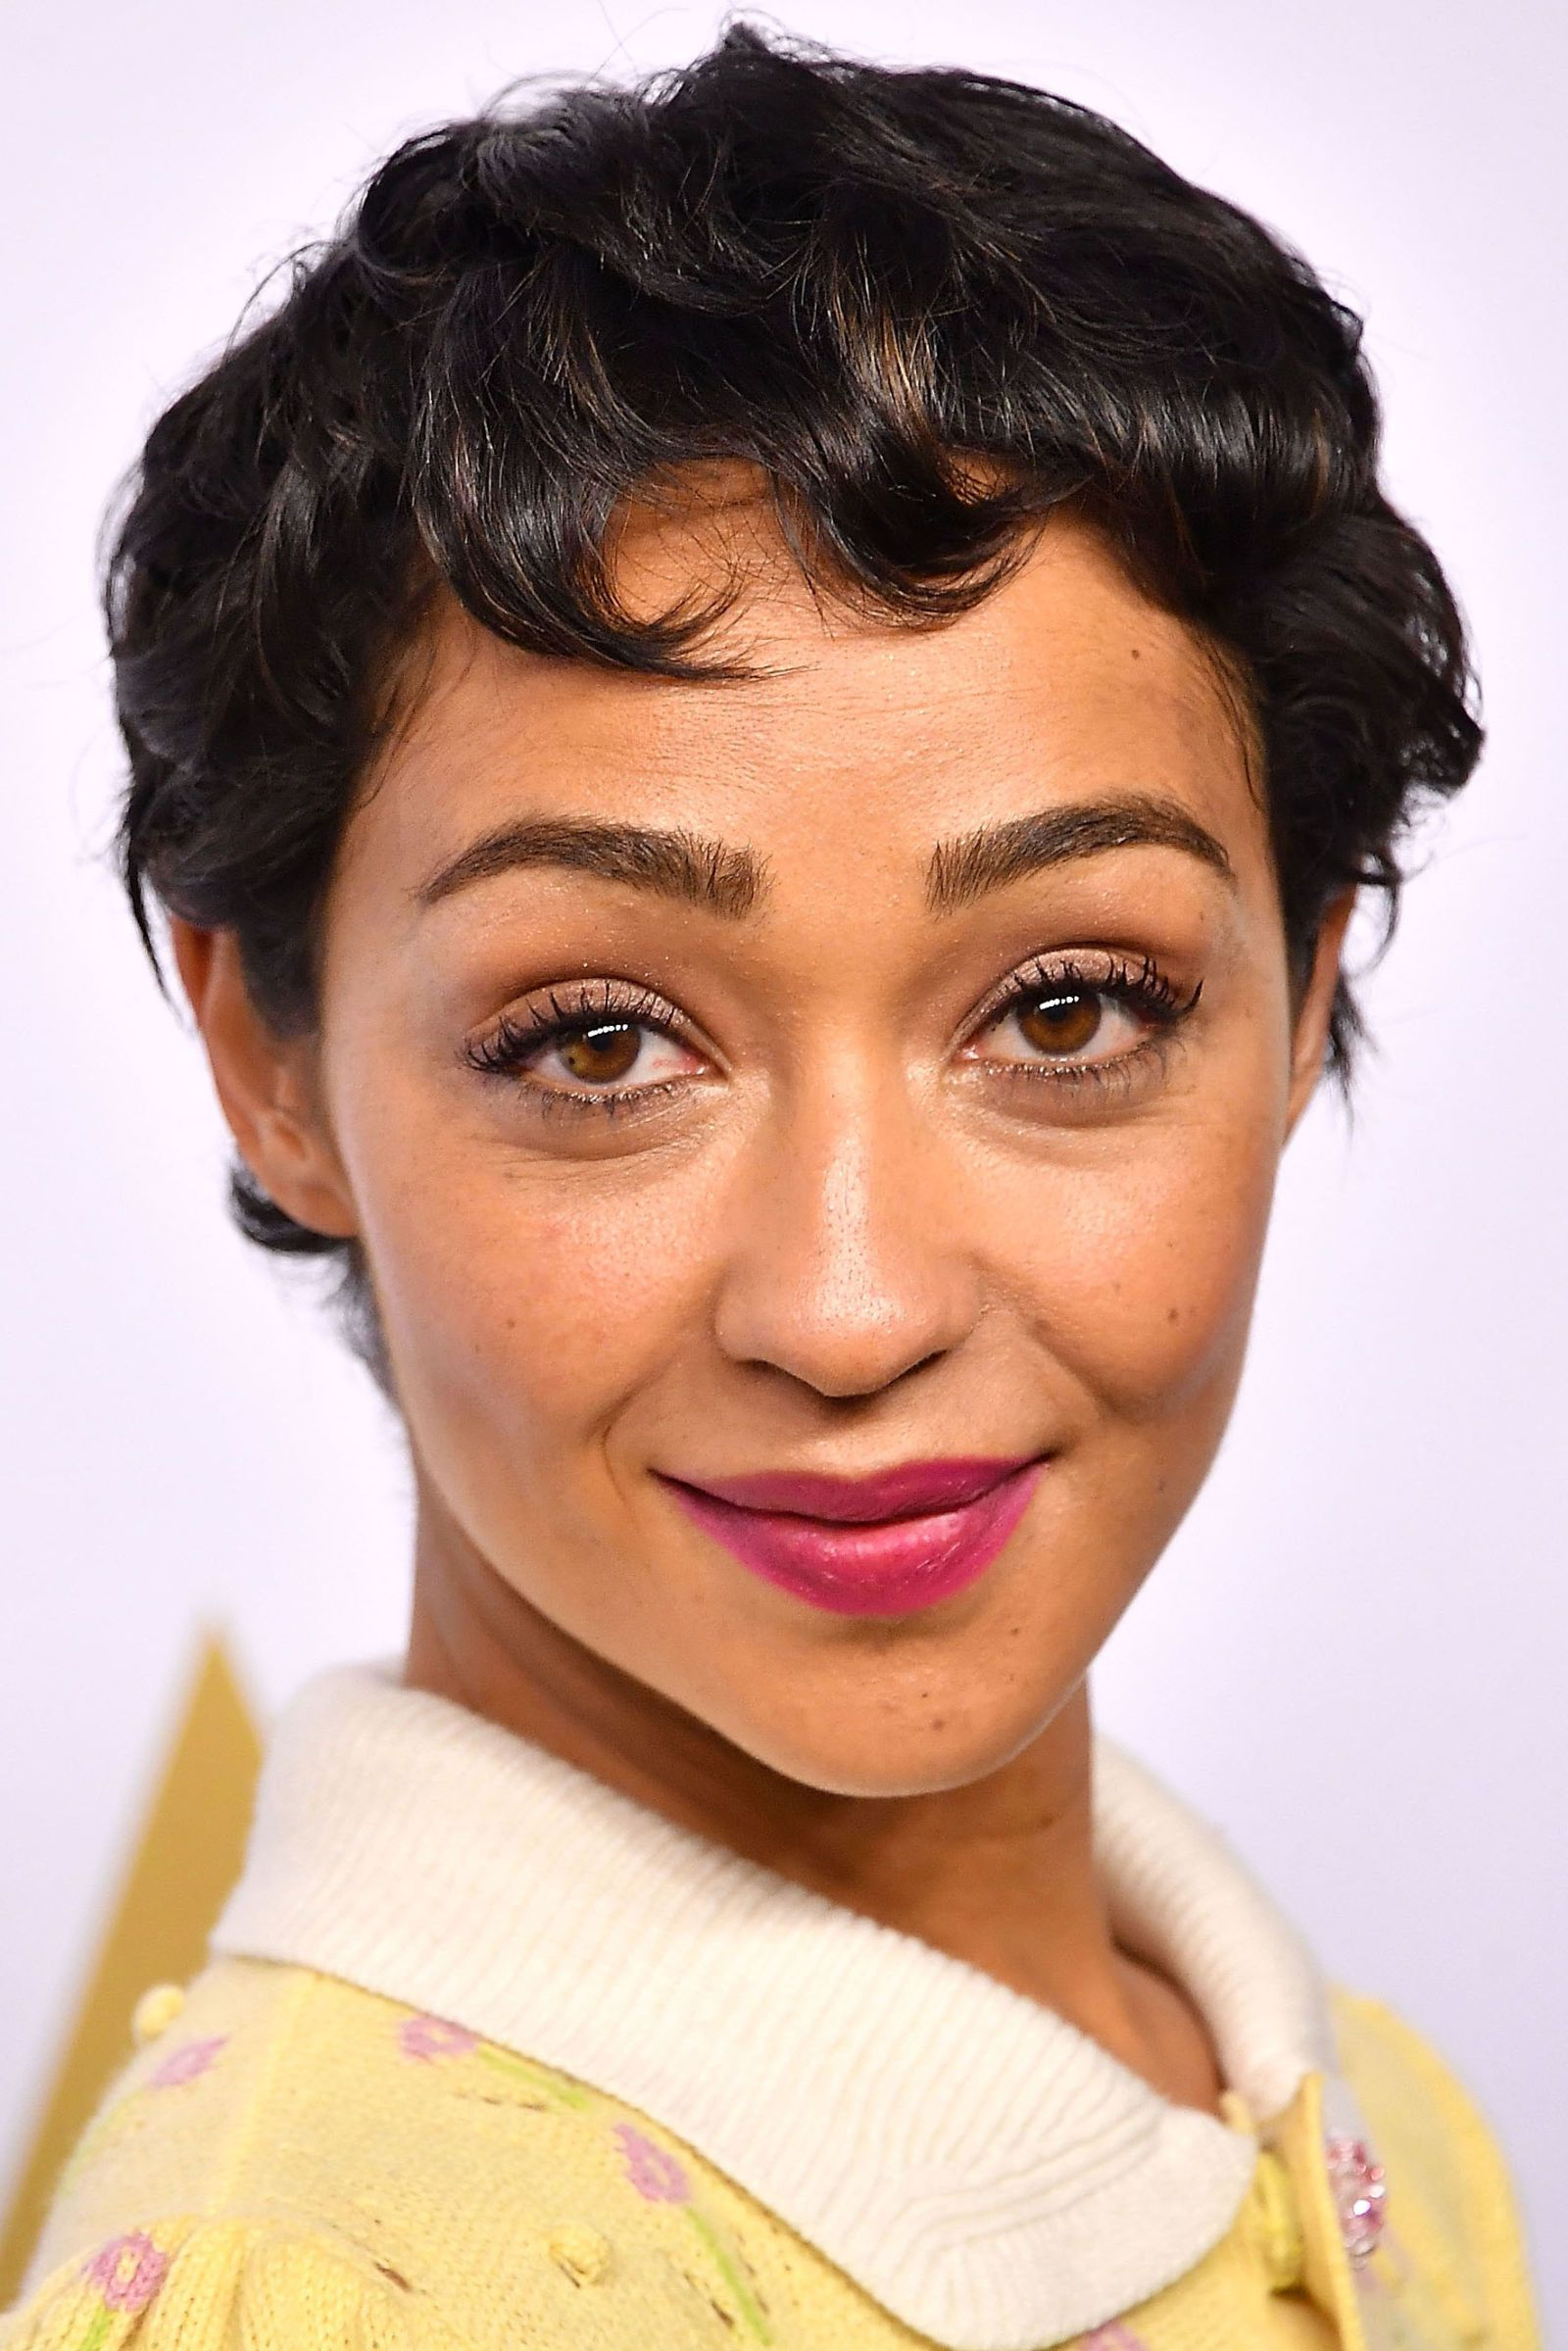 40 Best Short Pixie Cut Hairstyles 2019 – Cute Pixie Inside Pixie Haircuts With Large Curls (View 9 of 20)